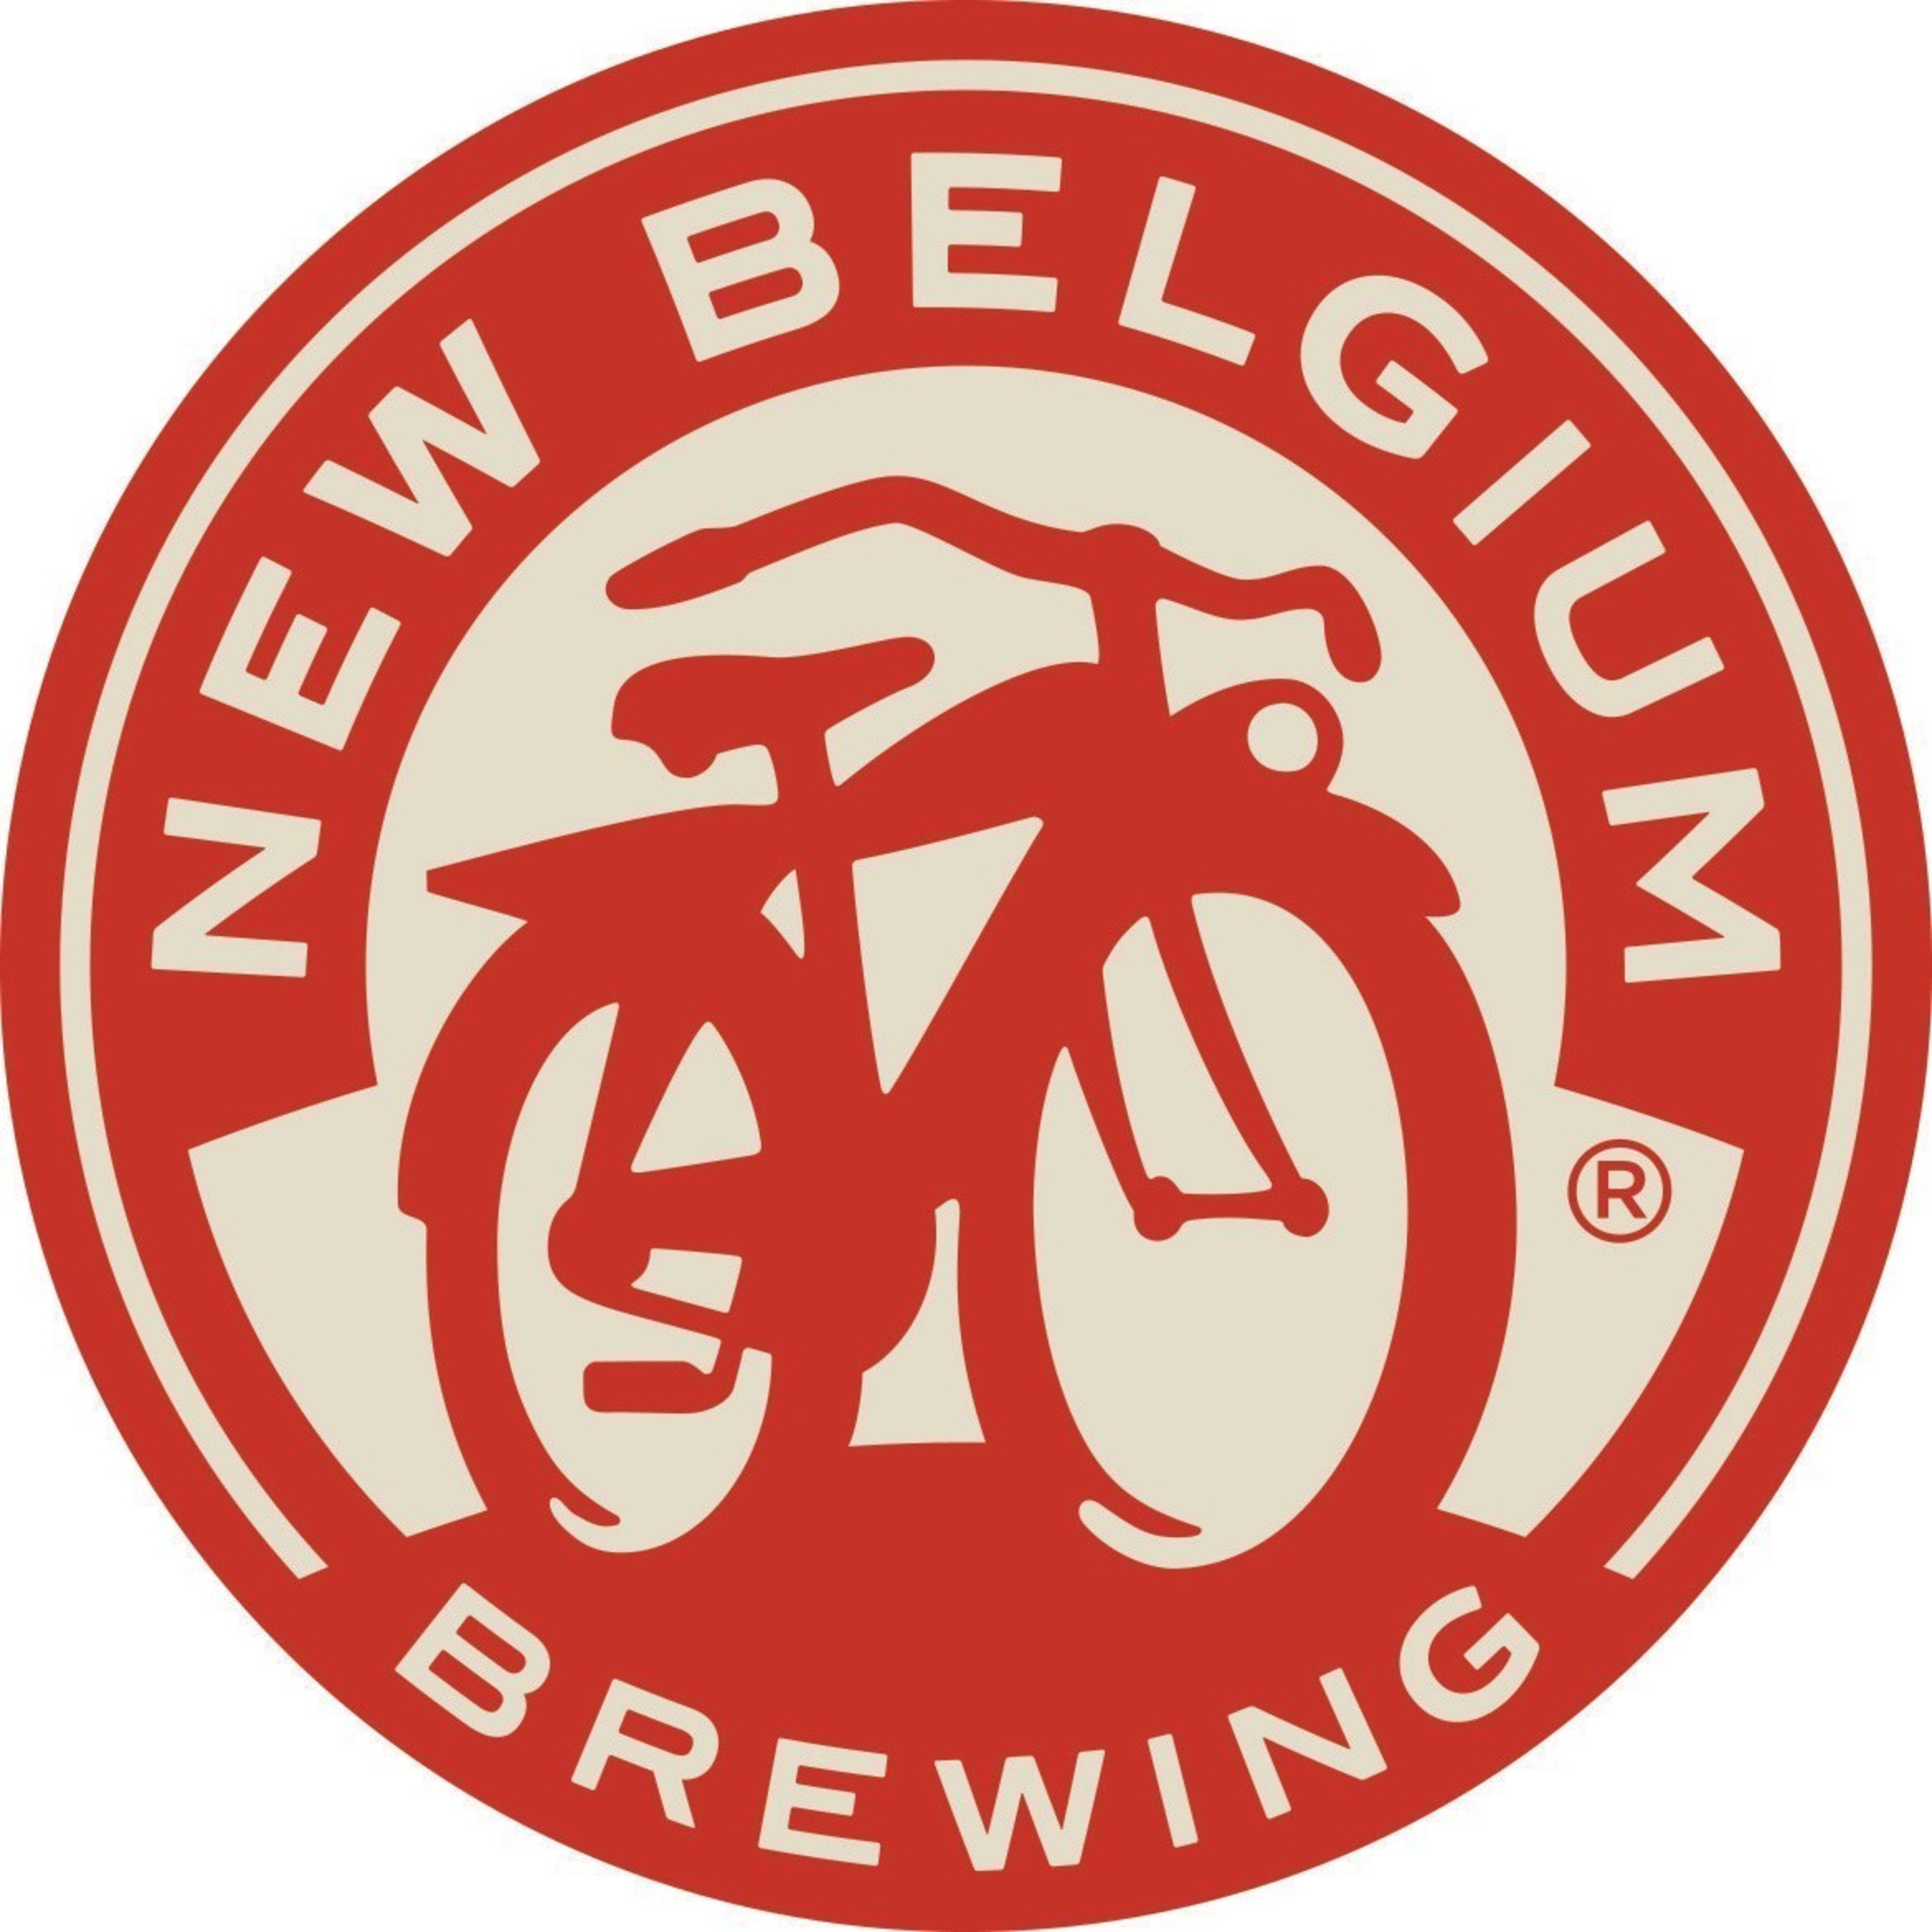 New Belgium Brewing, the 4th largest craft brewer in the United States that boasts popular brands including ...